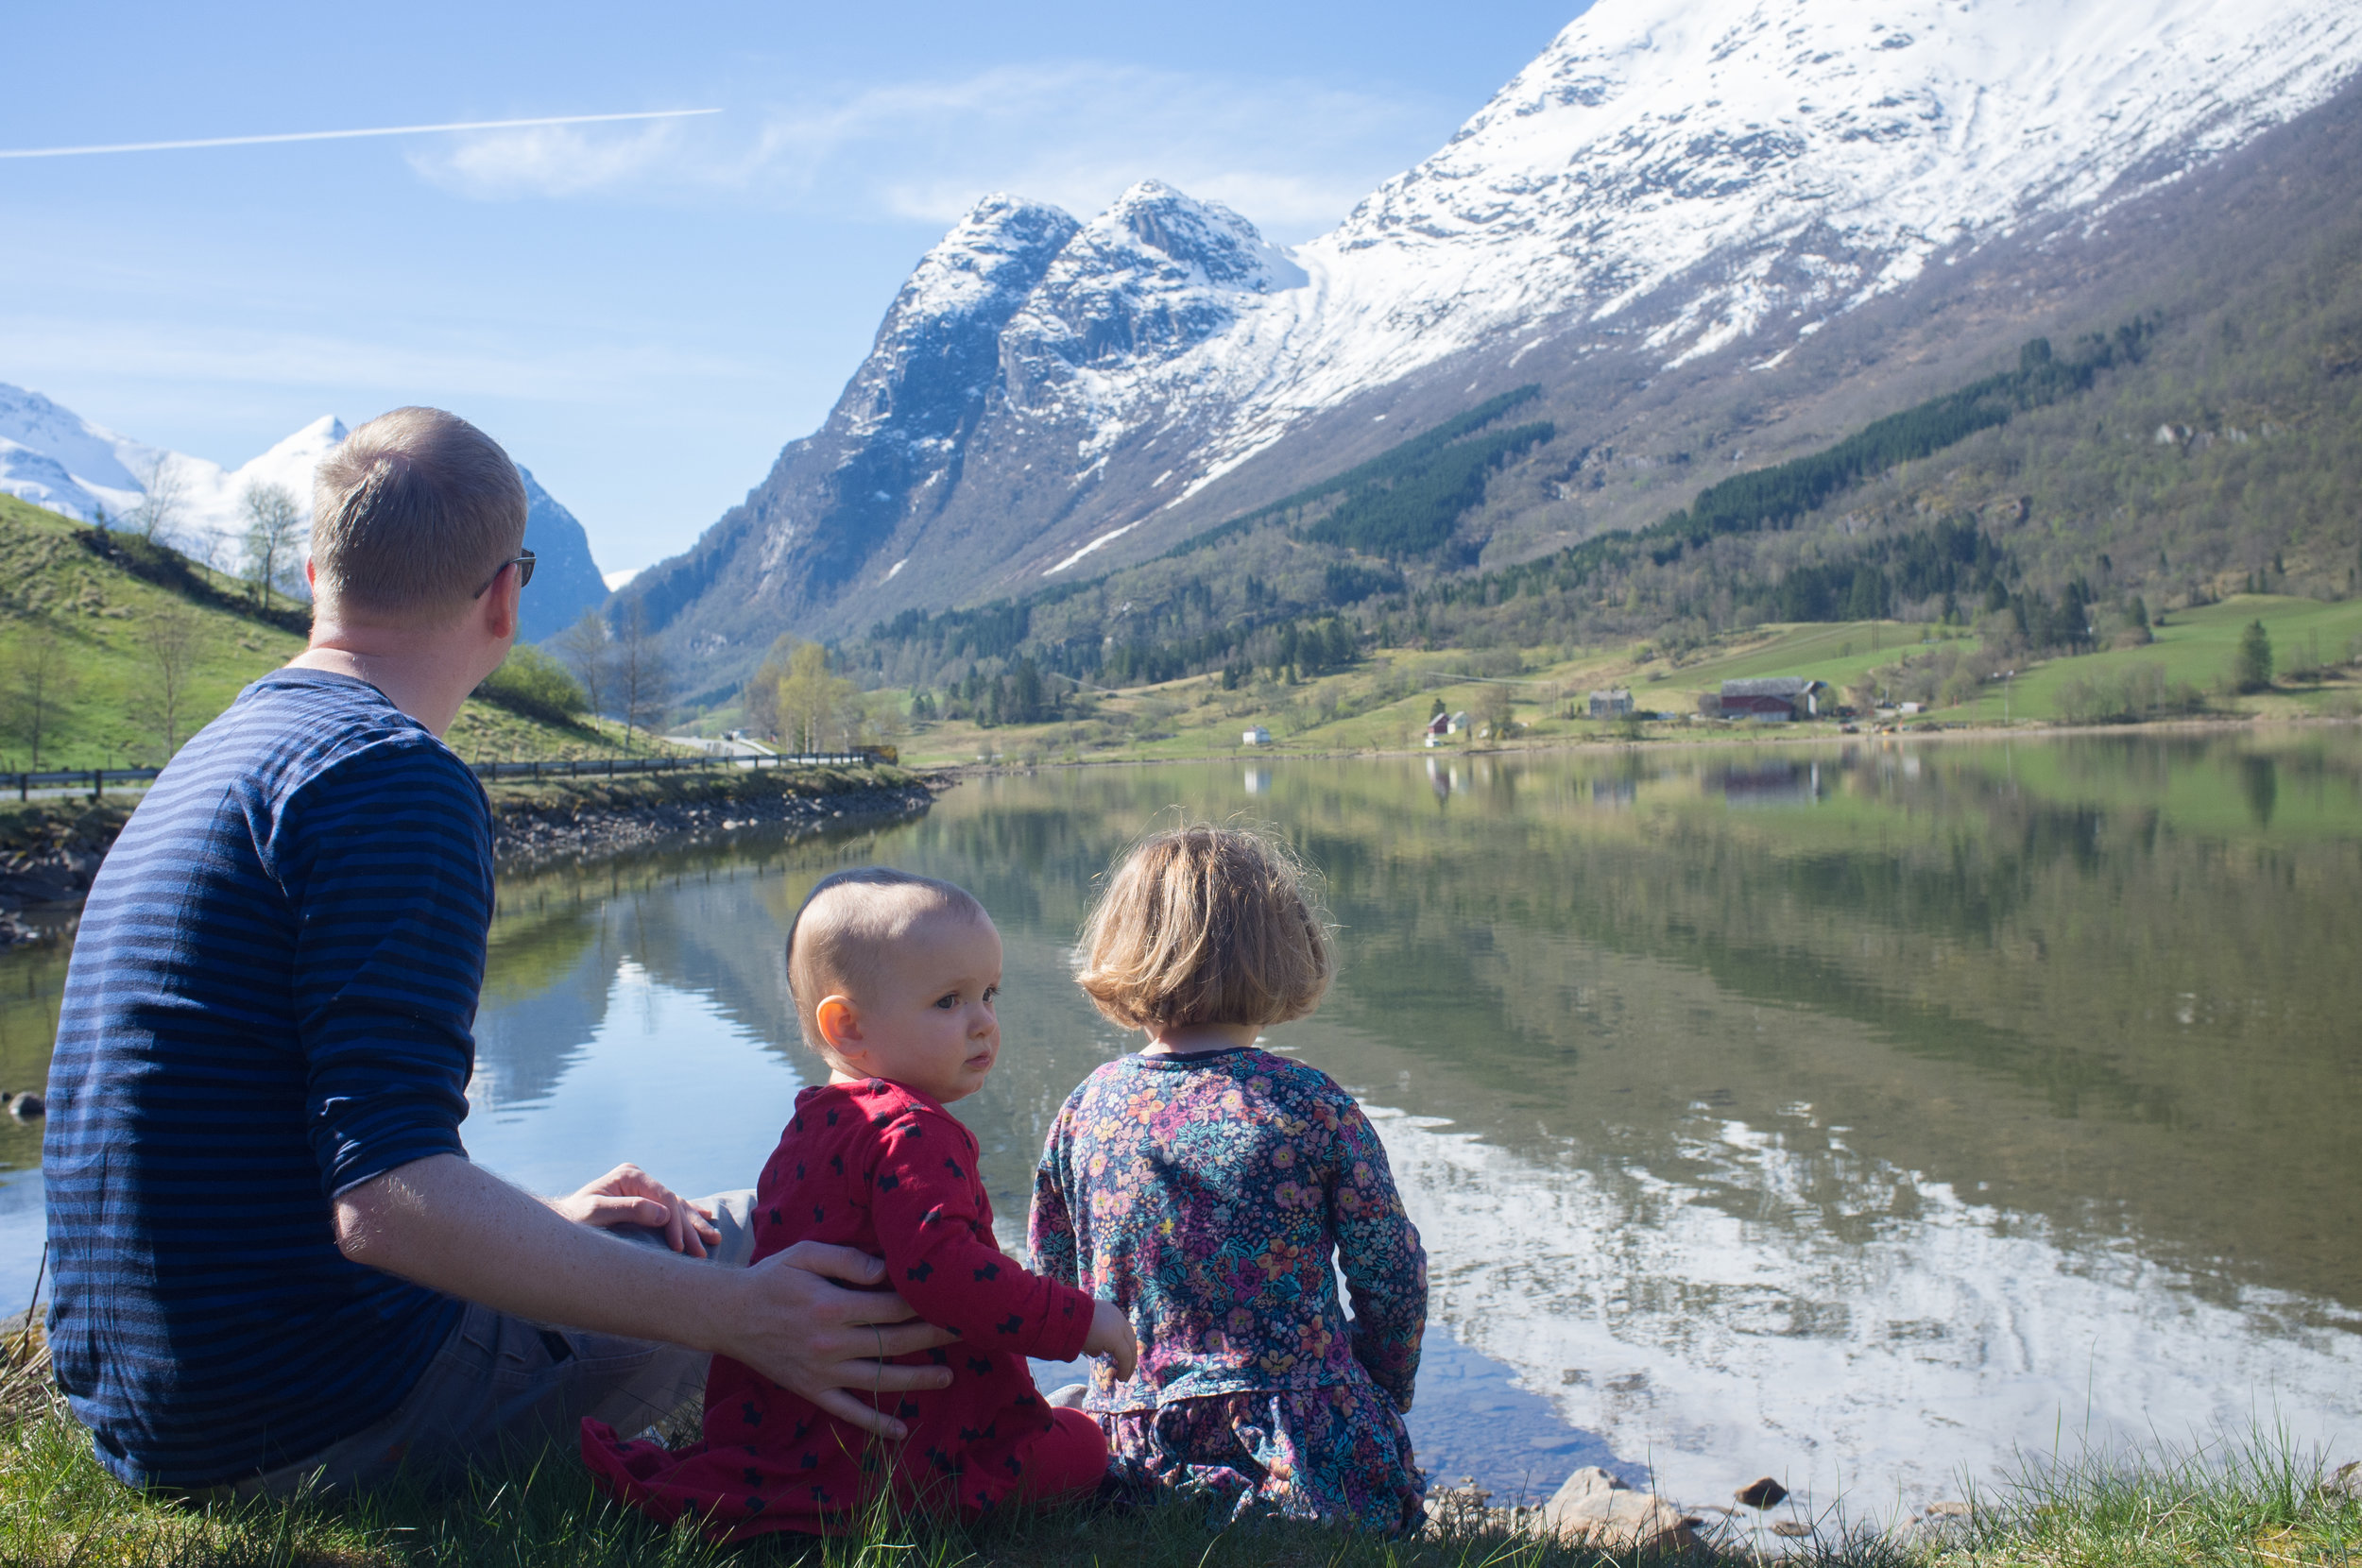 Taking in the view in Olden, Norway.